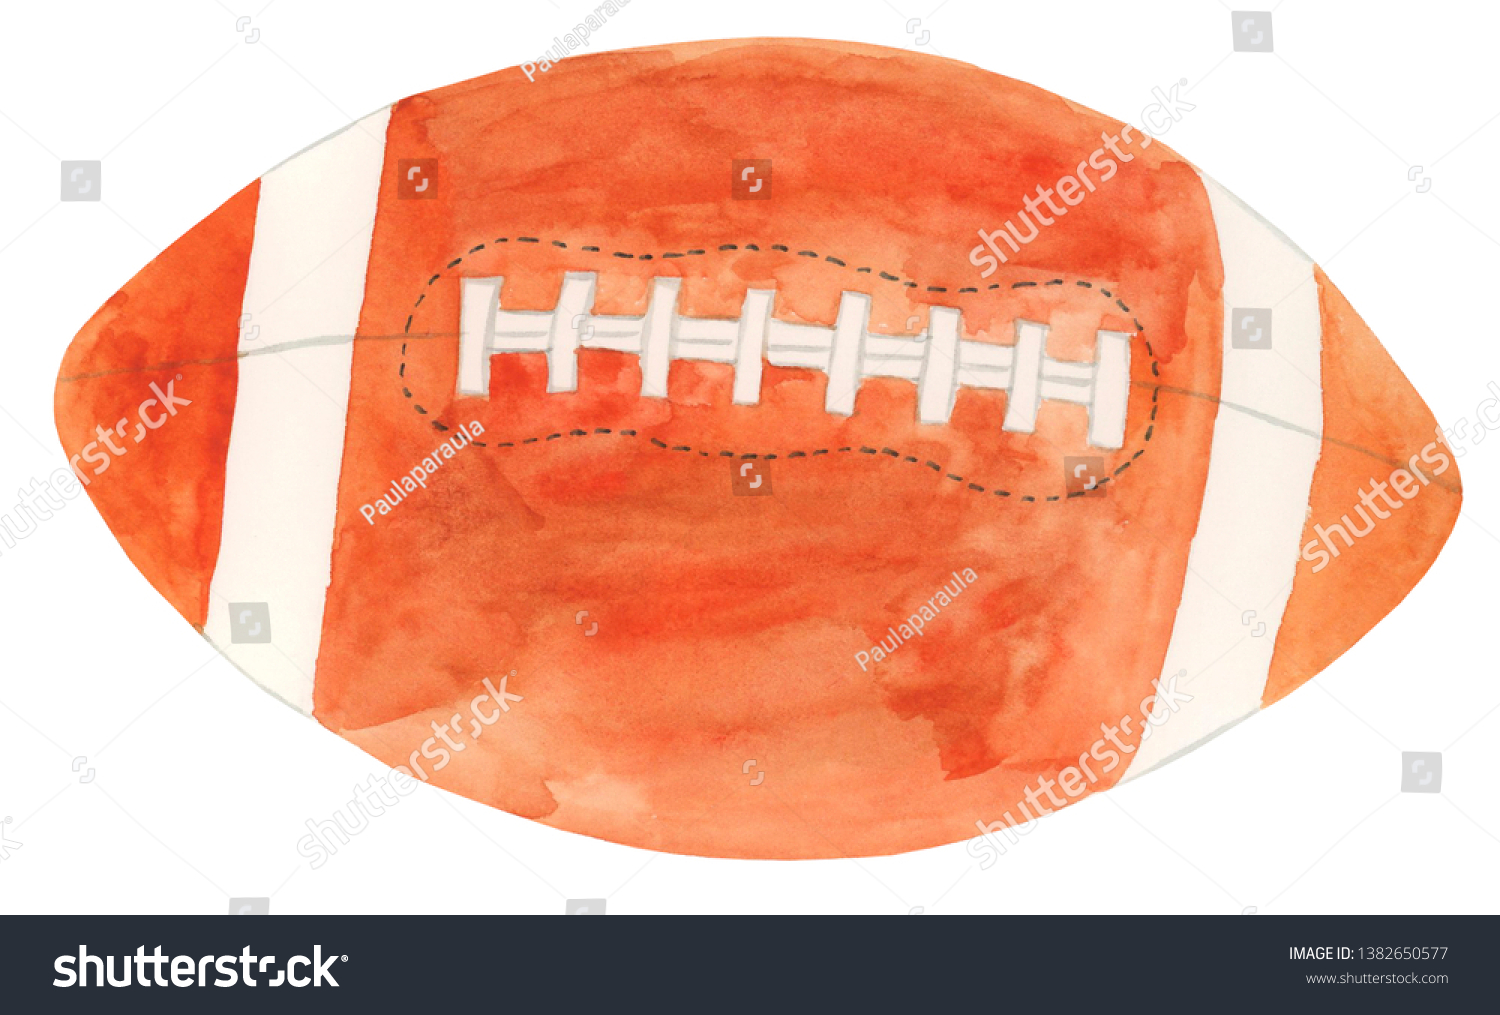 Watercolor Rugby Ball Illustration Rugby Ball Stock Illustration 1382650577